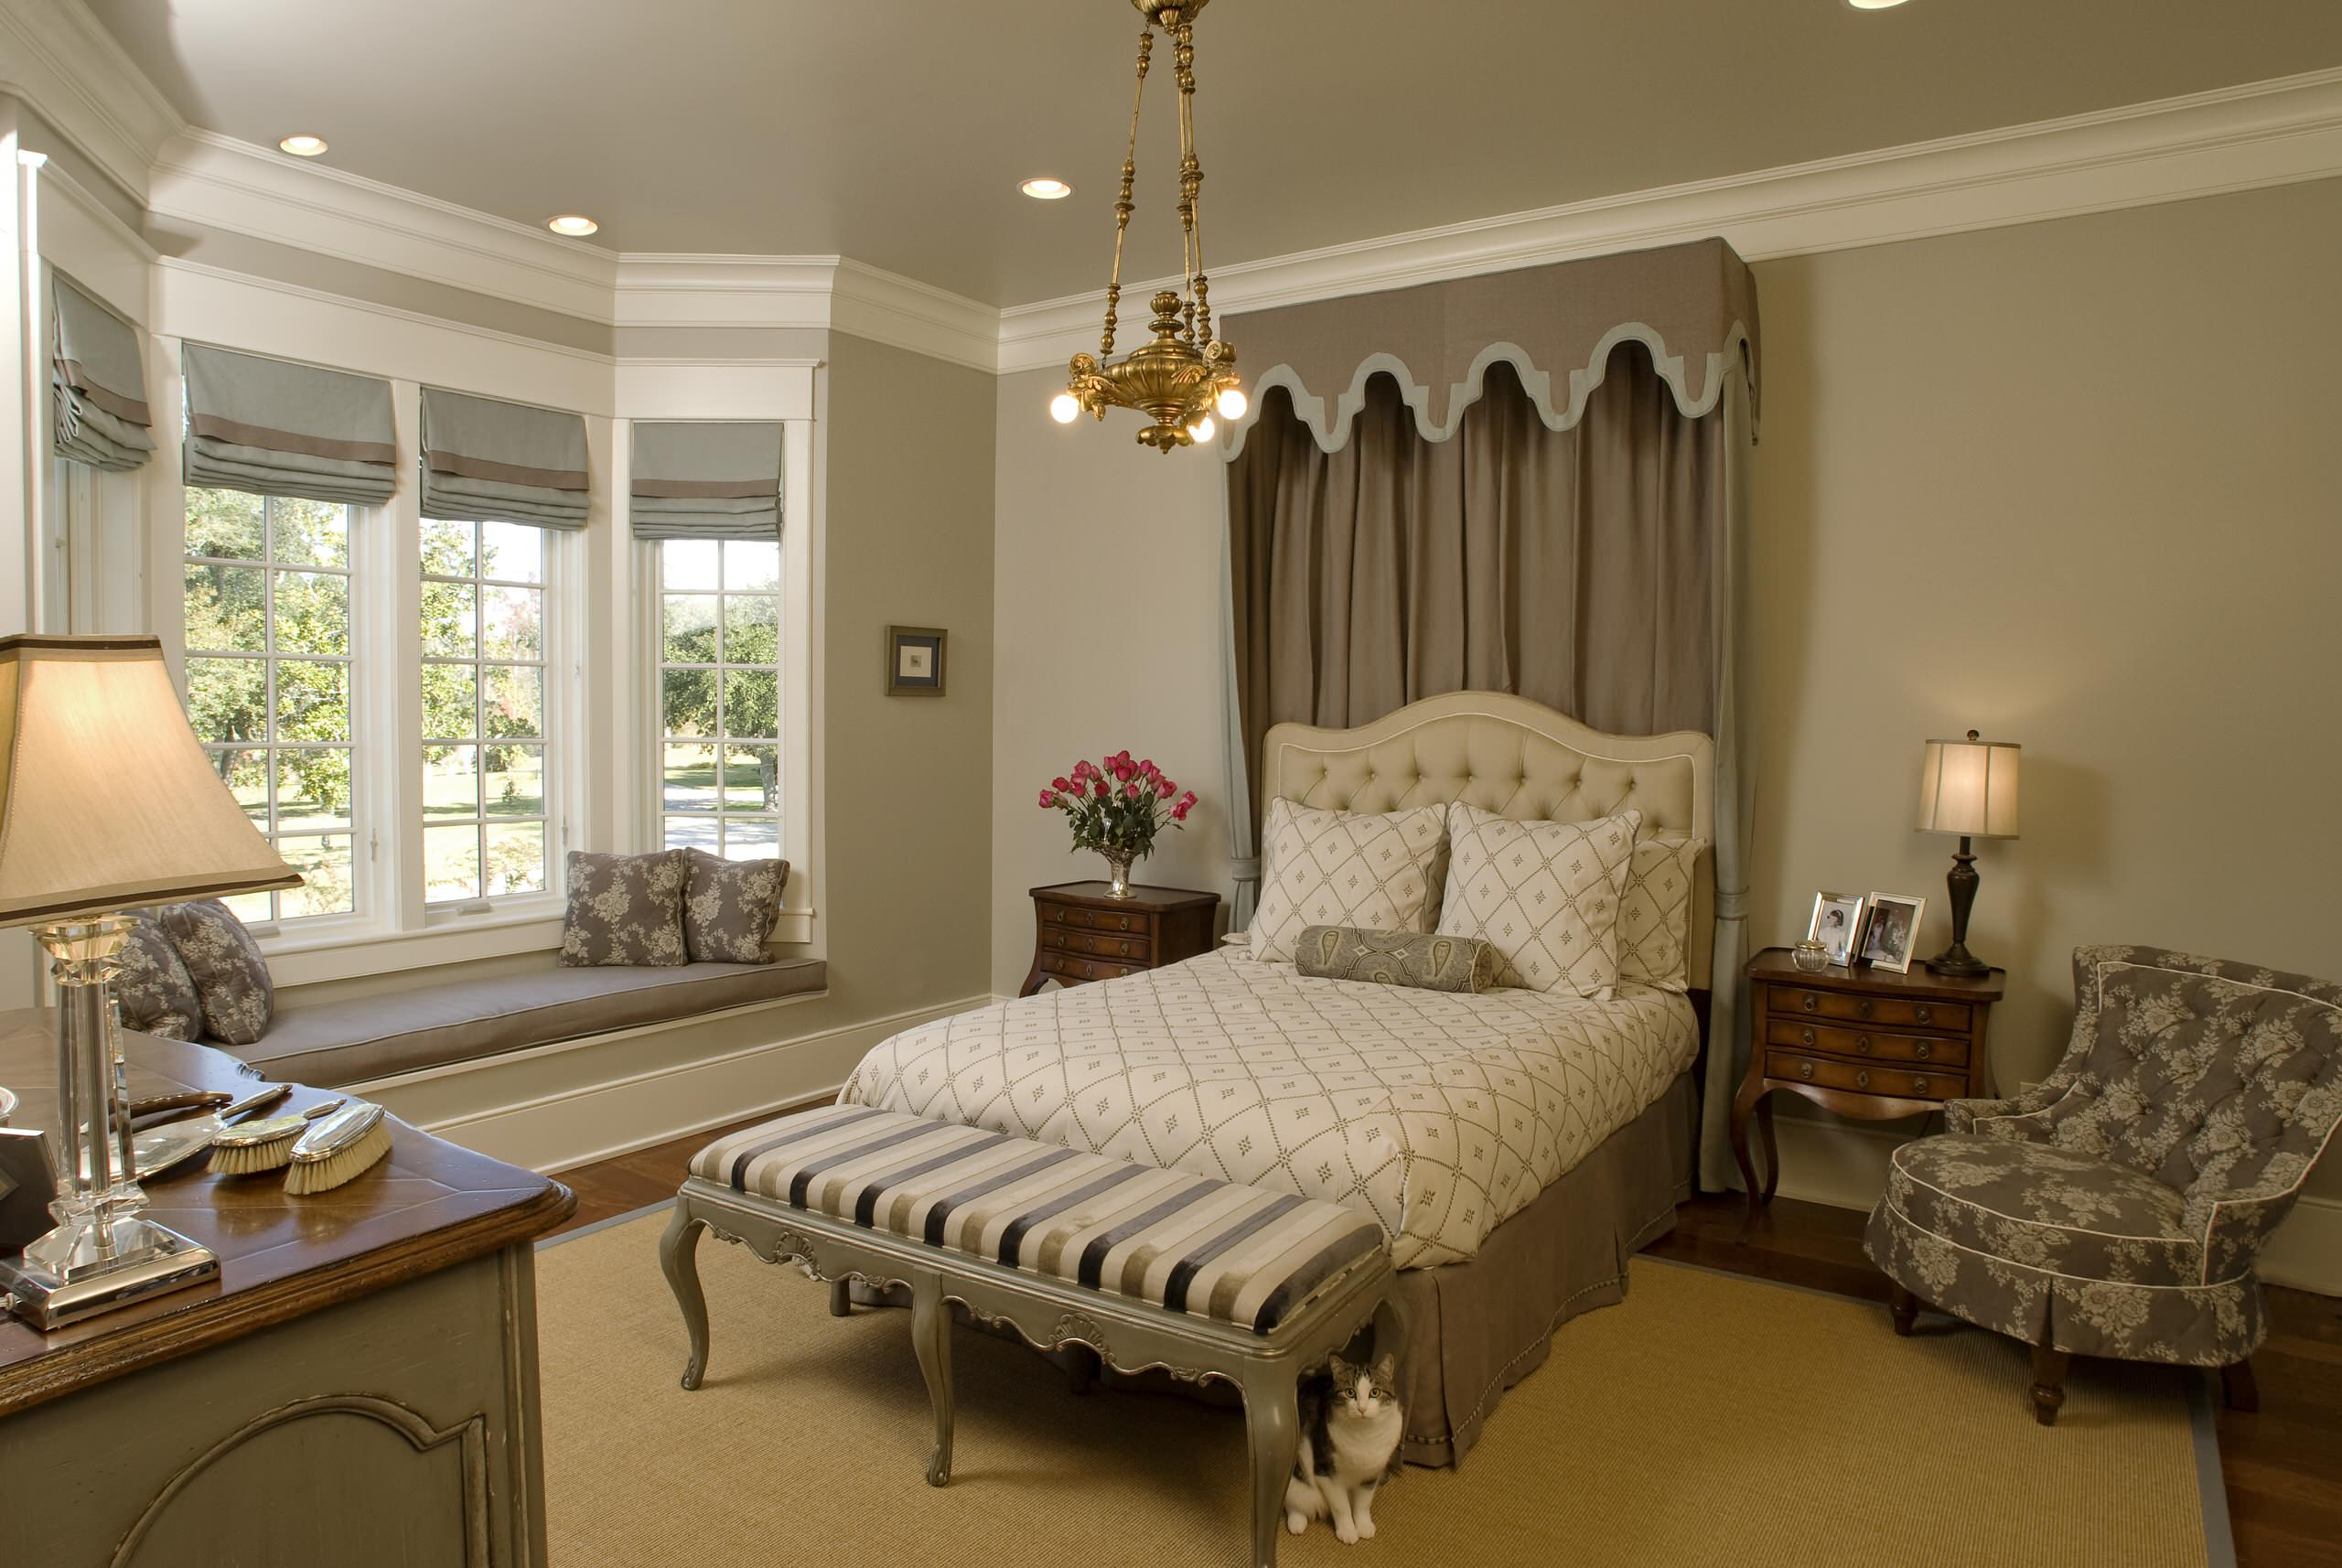 Revere pewter Traditional Bedroom master with beige walls and no fireplace dark wood floor bedroom